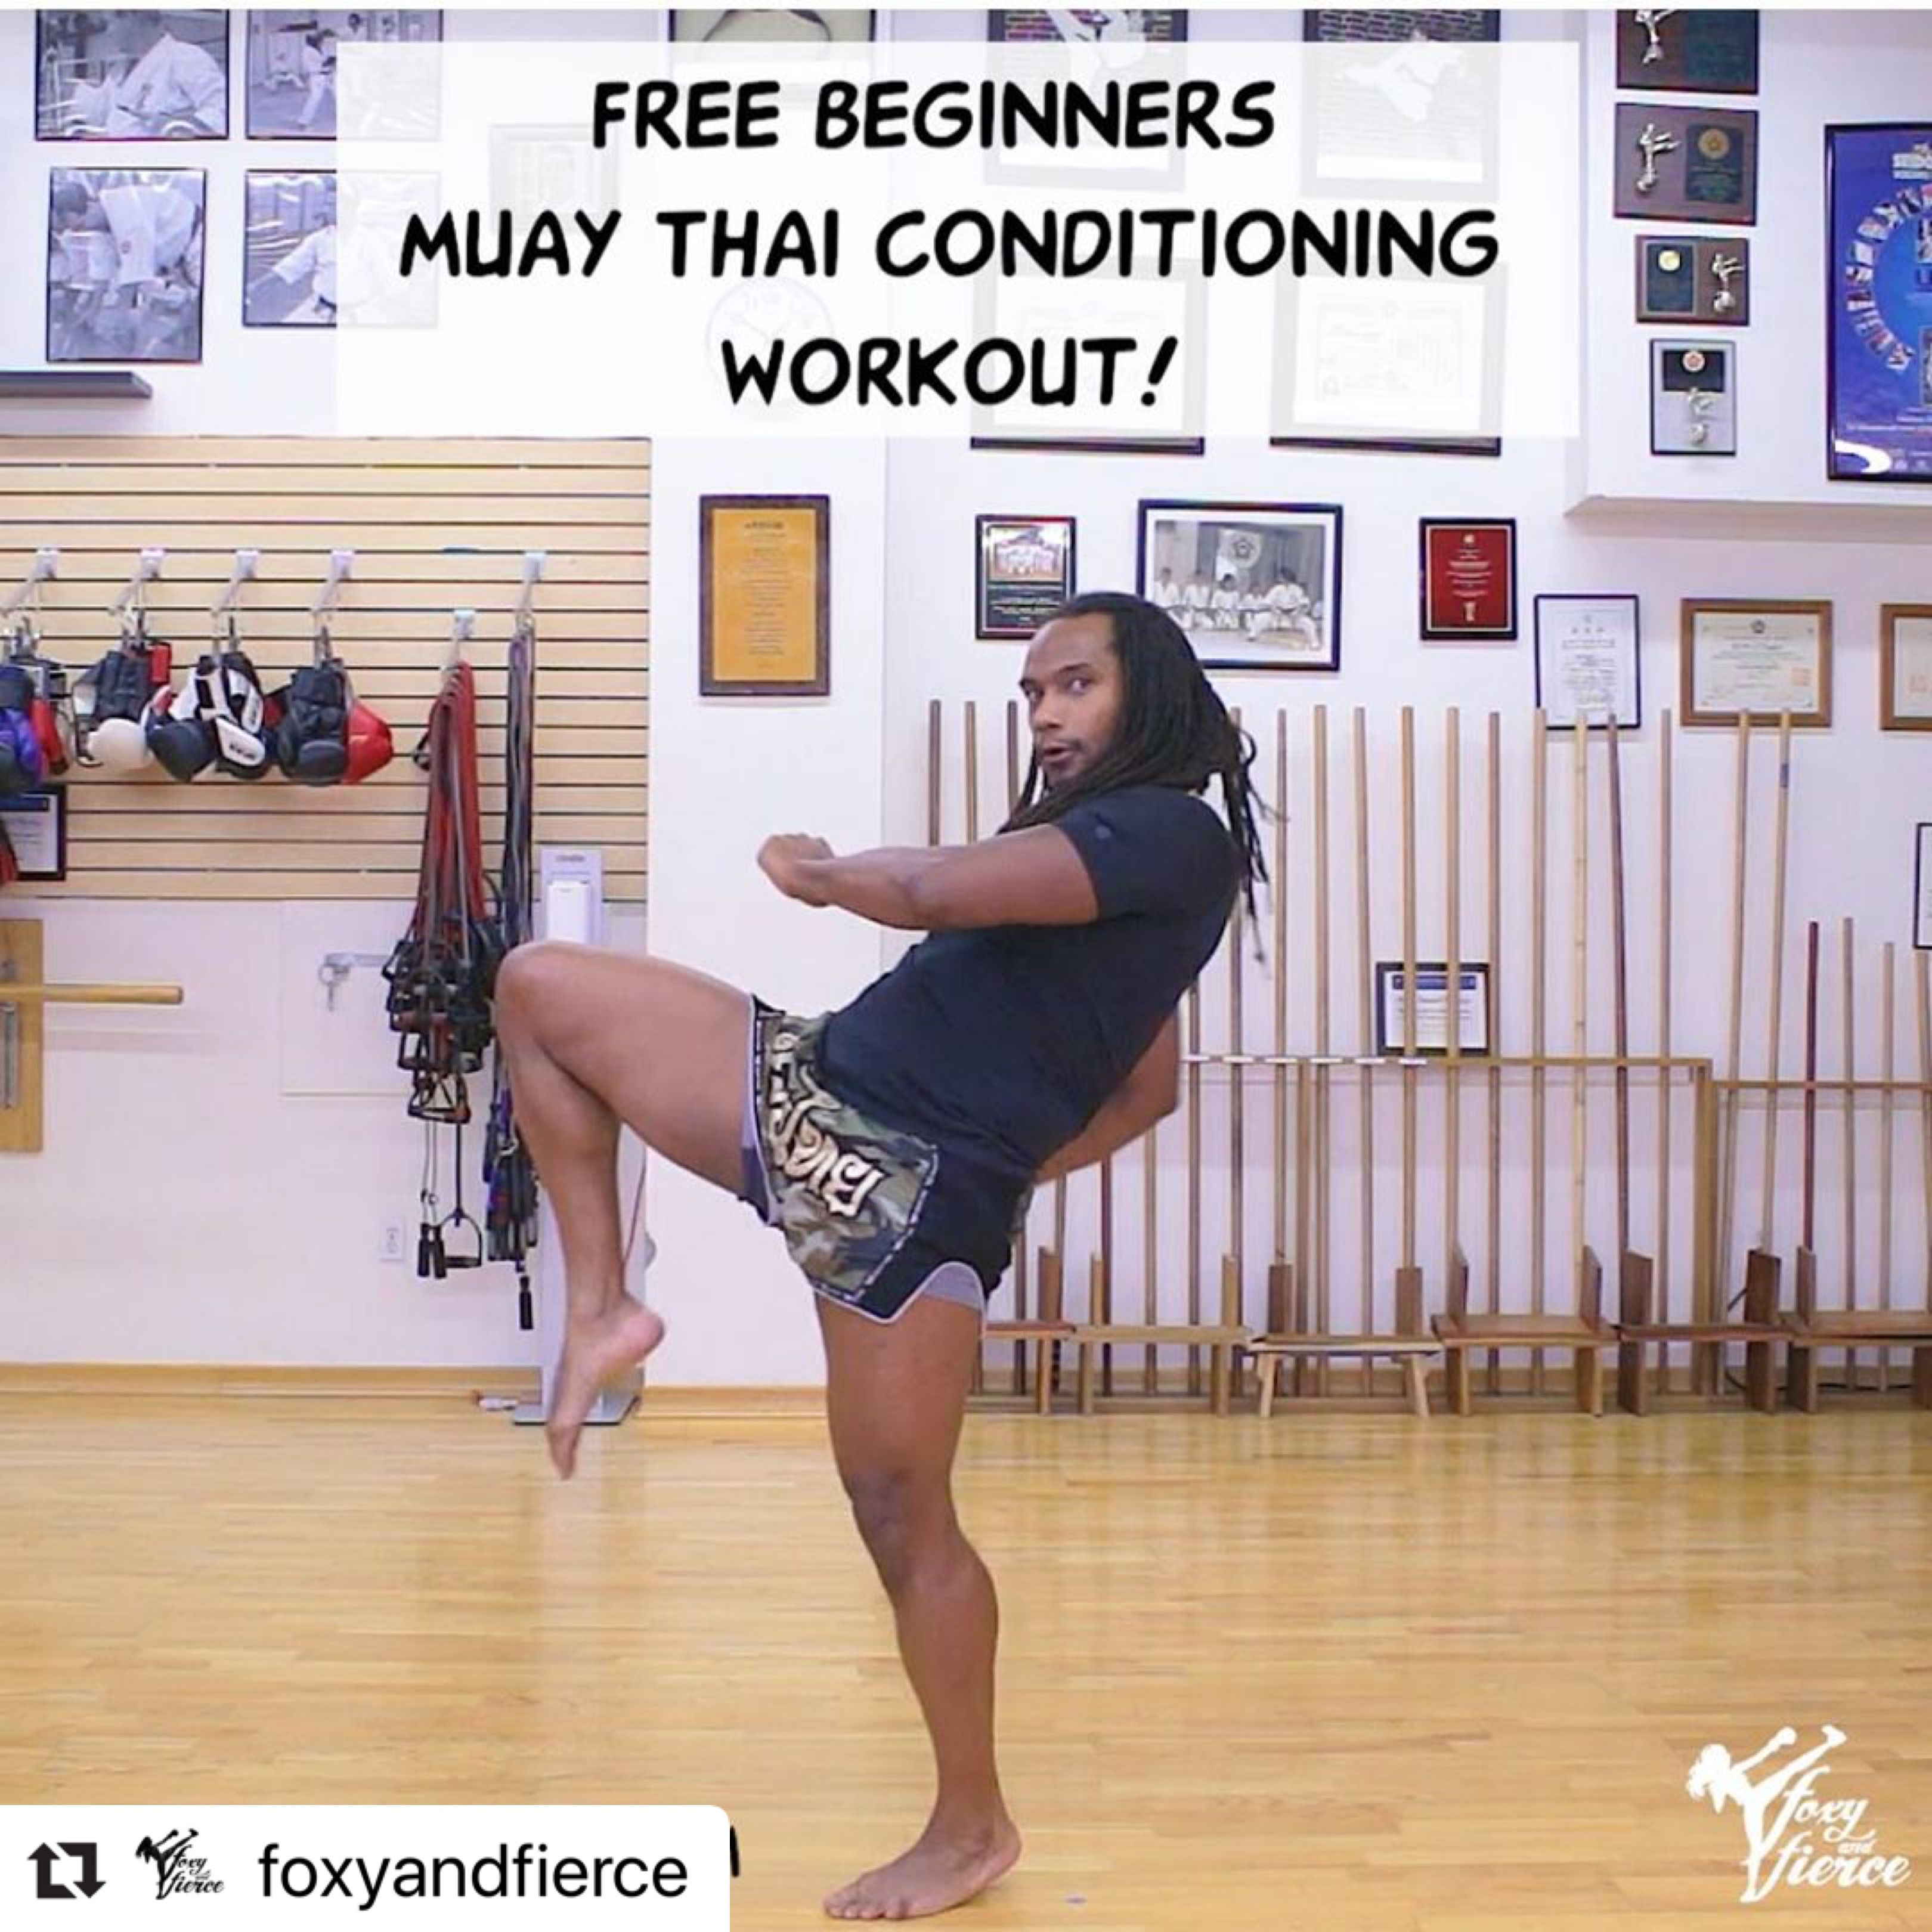 Foxy and fierce live stream workout in 2020 streaming